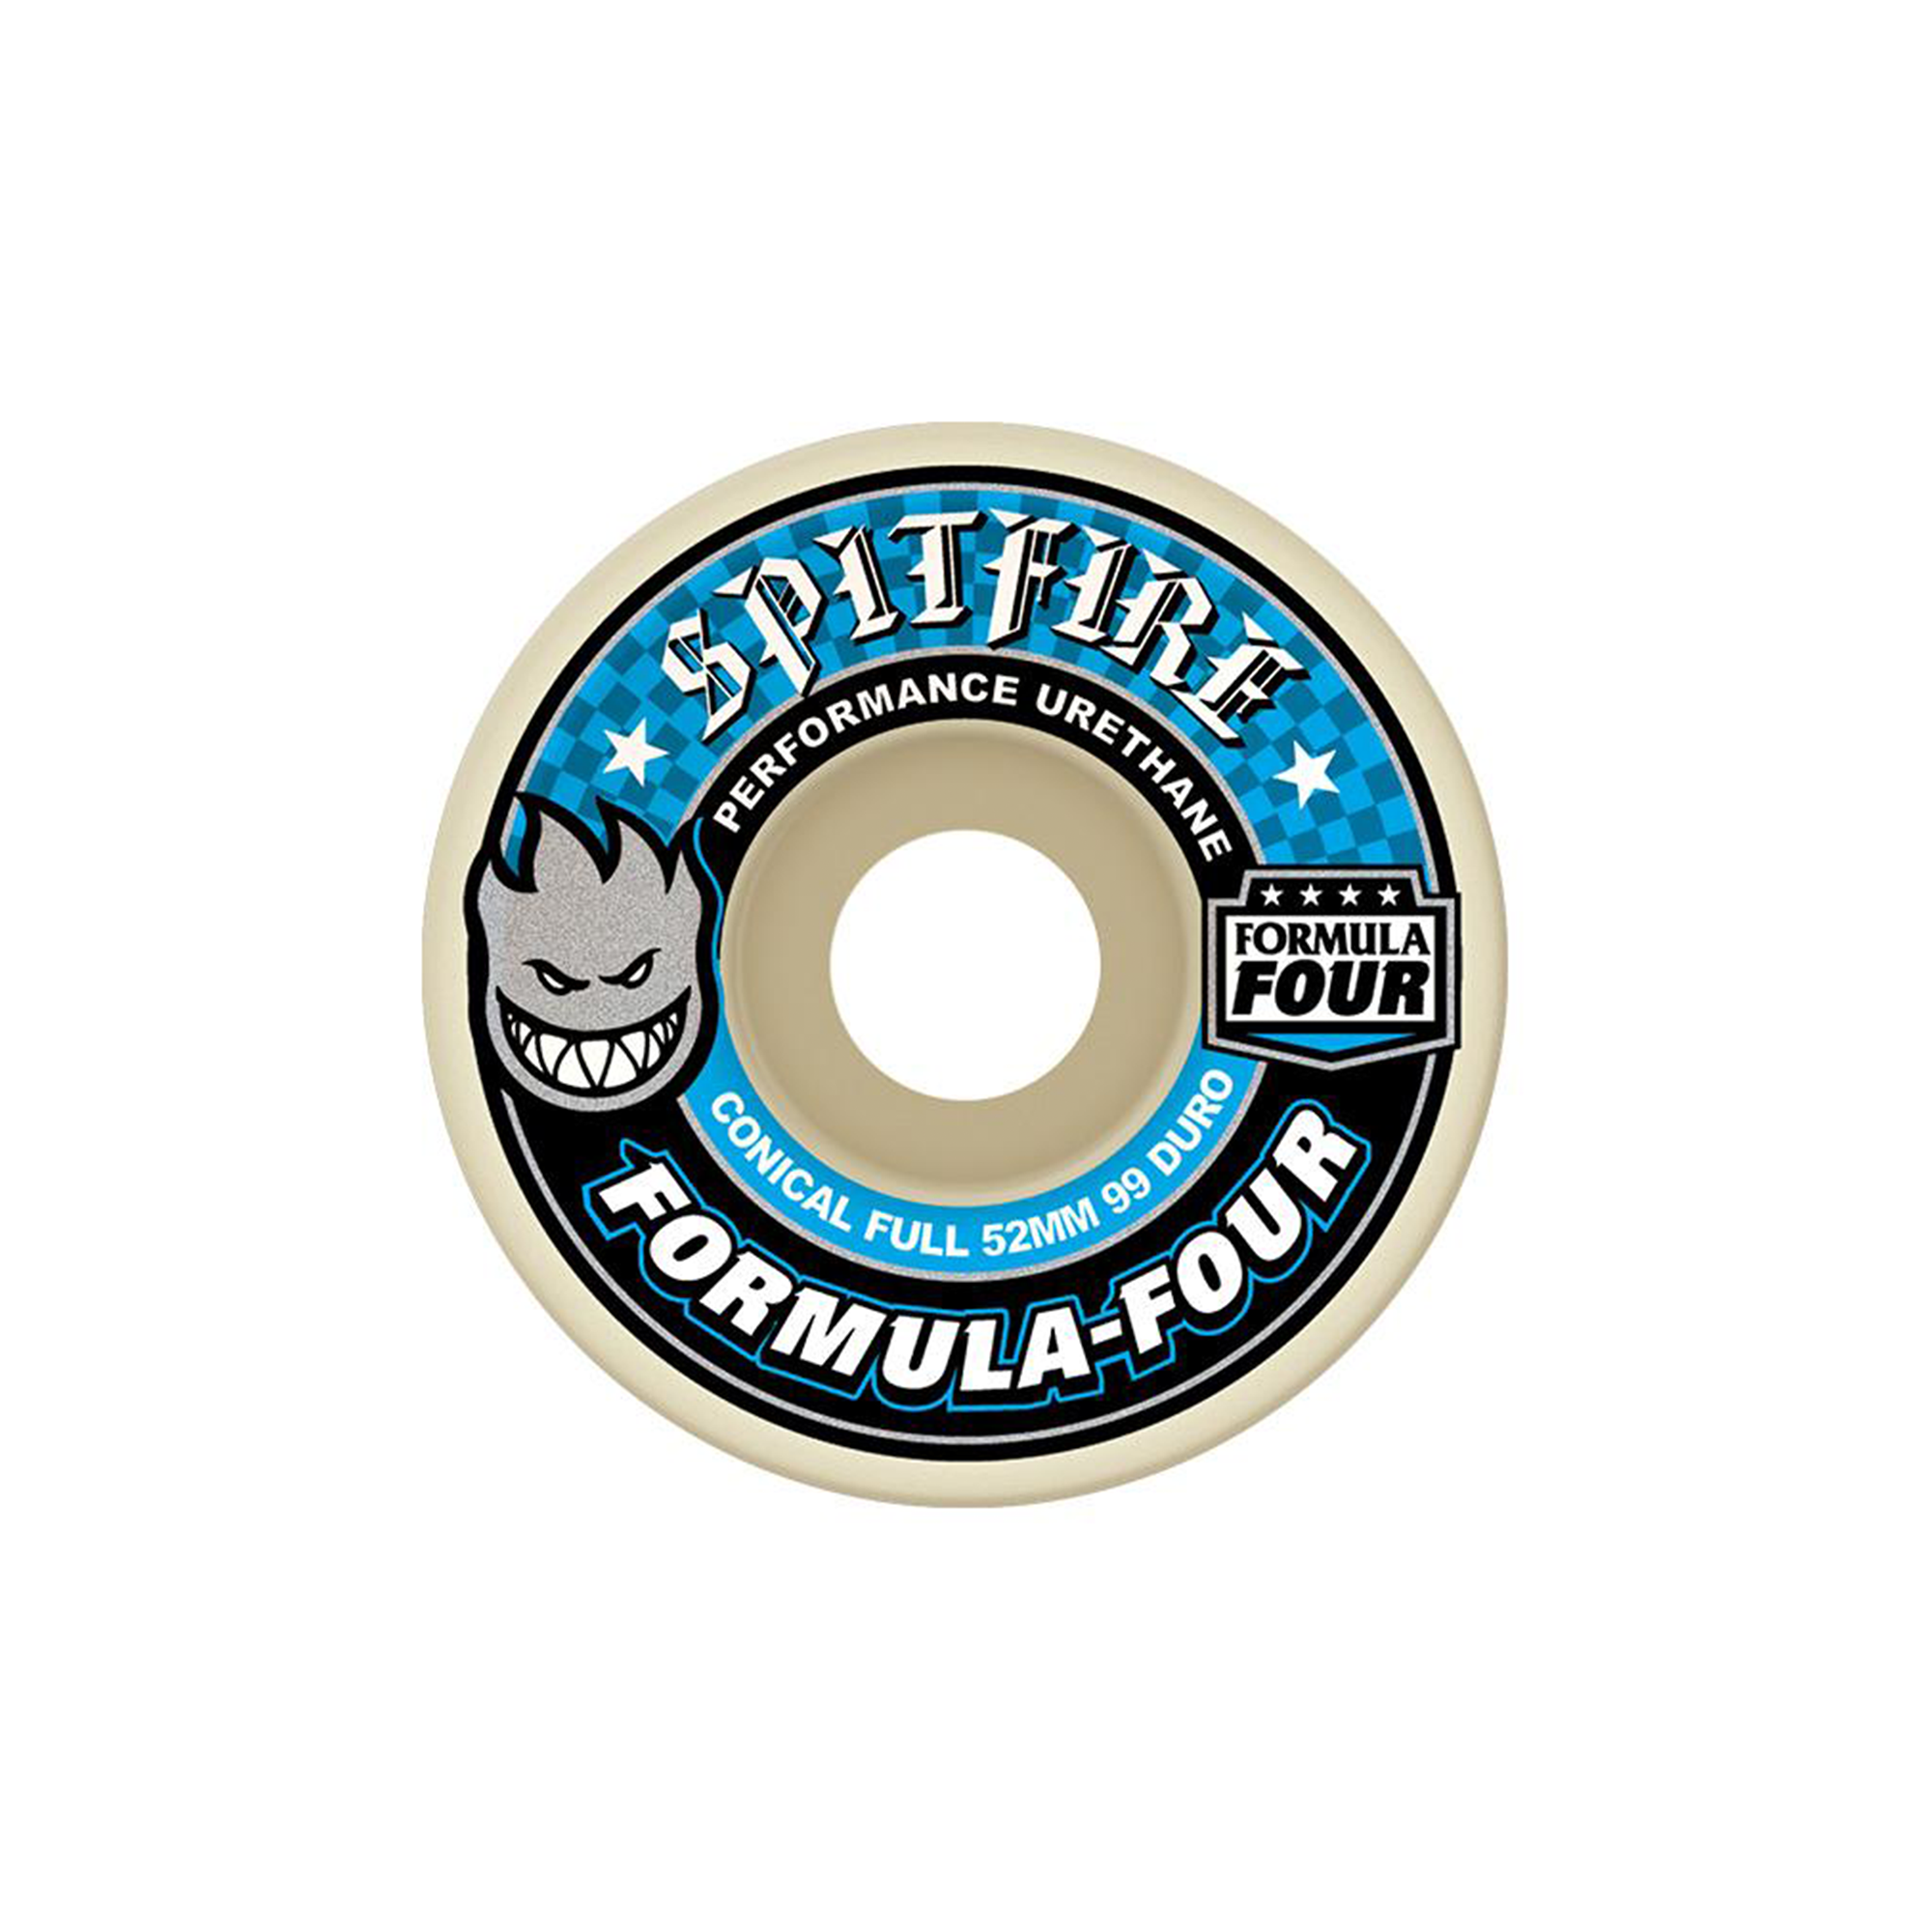 SPITFIRE FORMULA FOUR CONICAL FULL 99 WHEELS